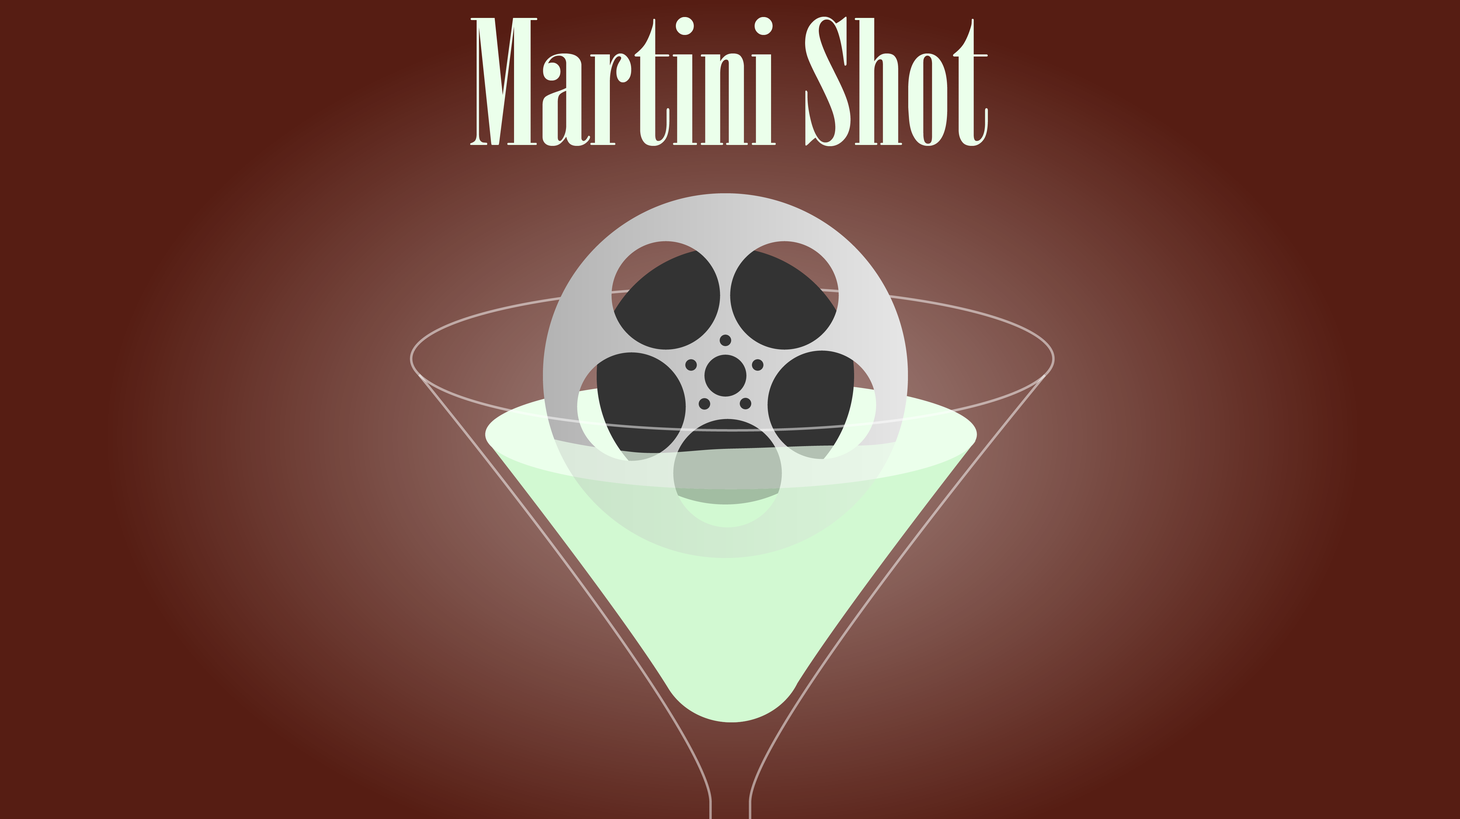 Hey Steve, on today's Martini Shot I add a laugh track to every single   sentence I say. Not really. They're real laughs. Hahahahahahha. See?